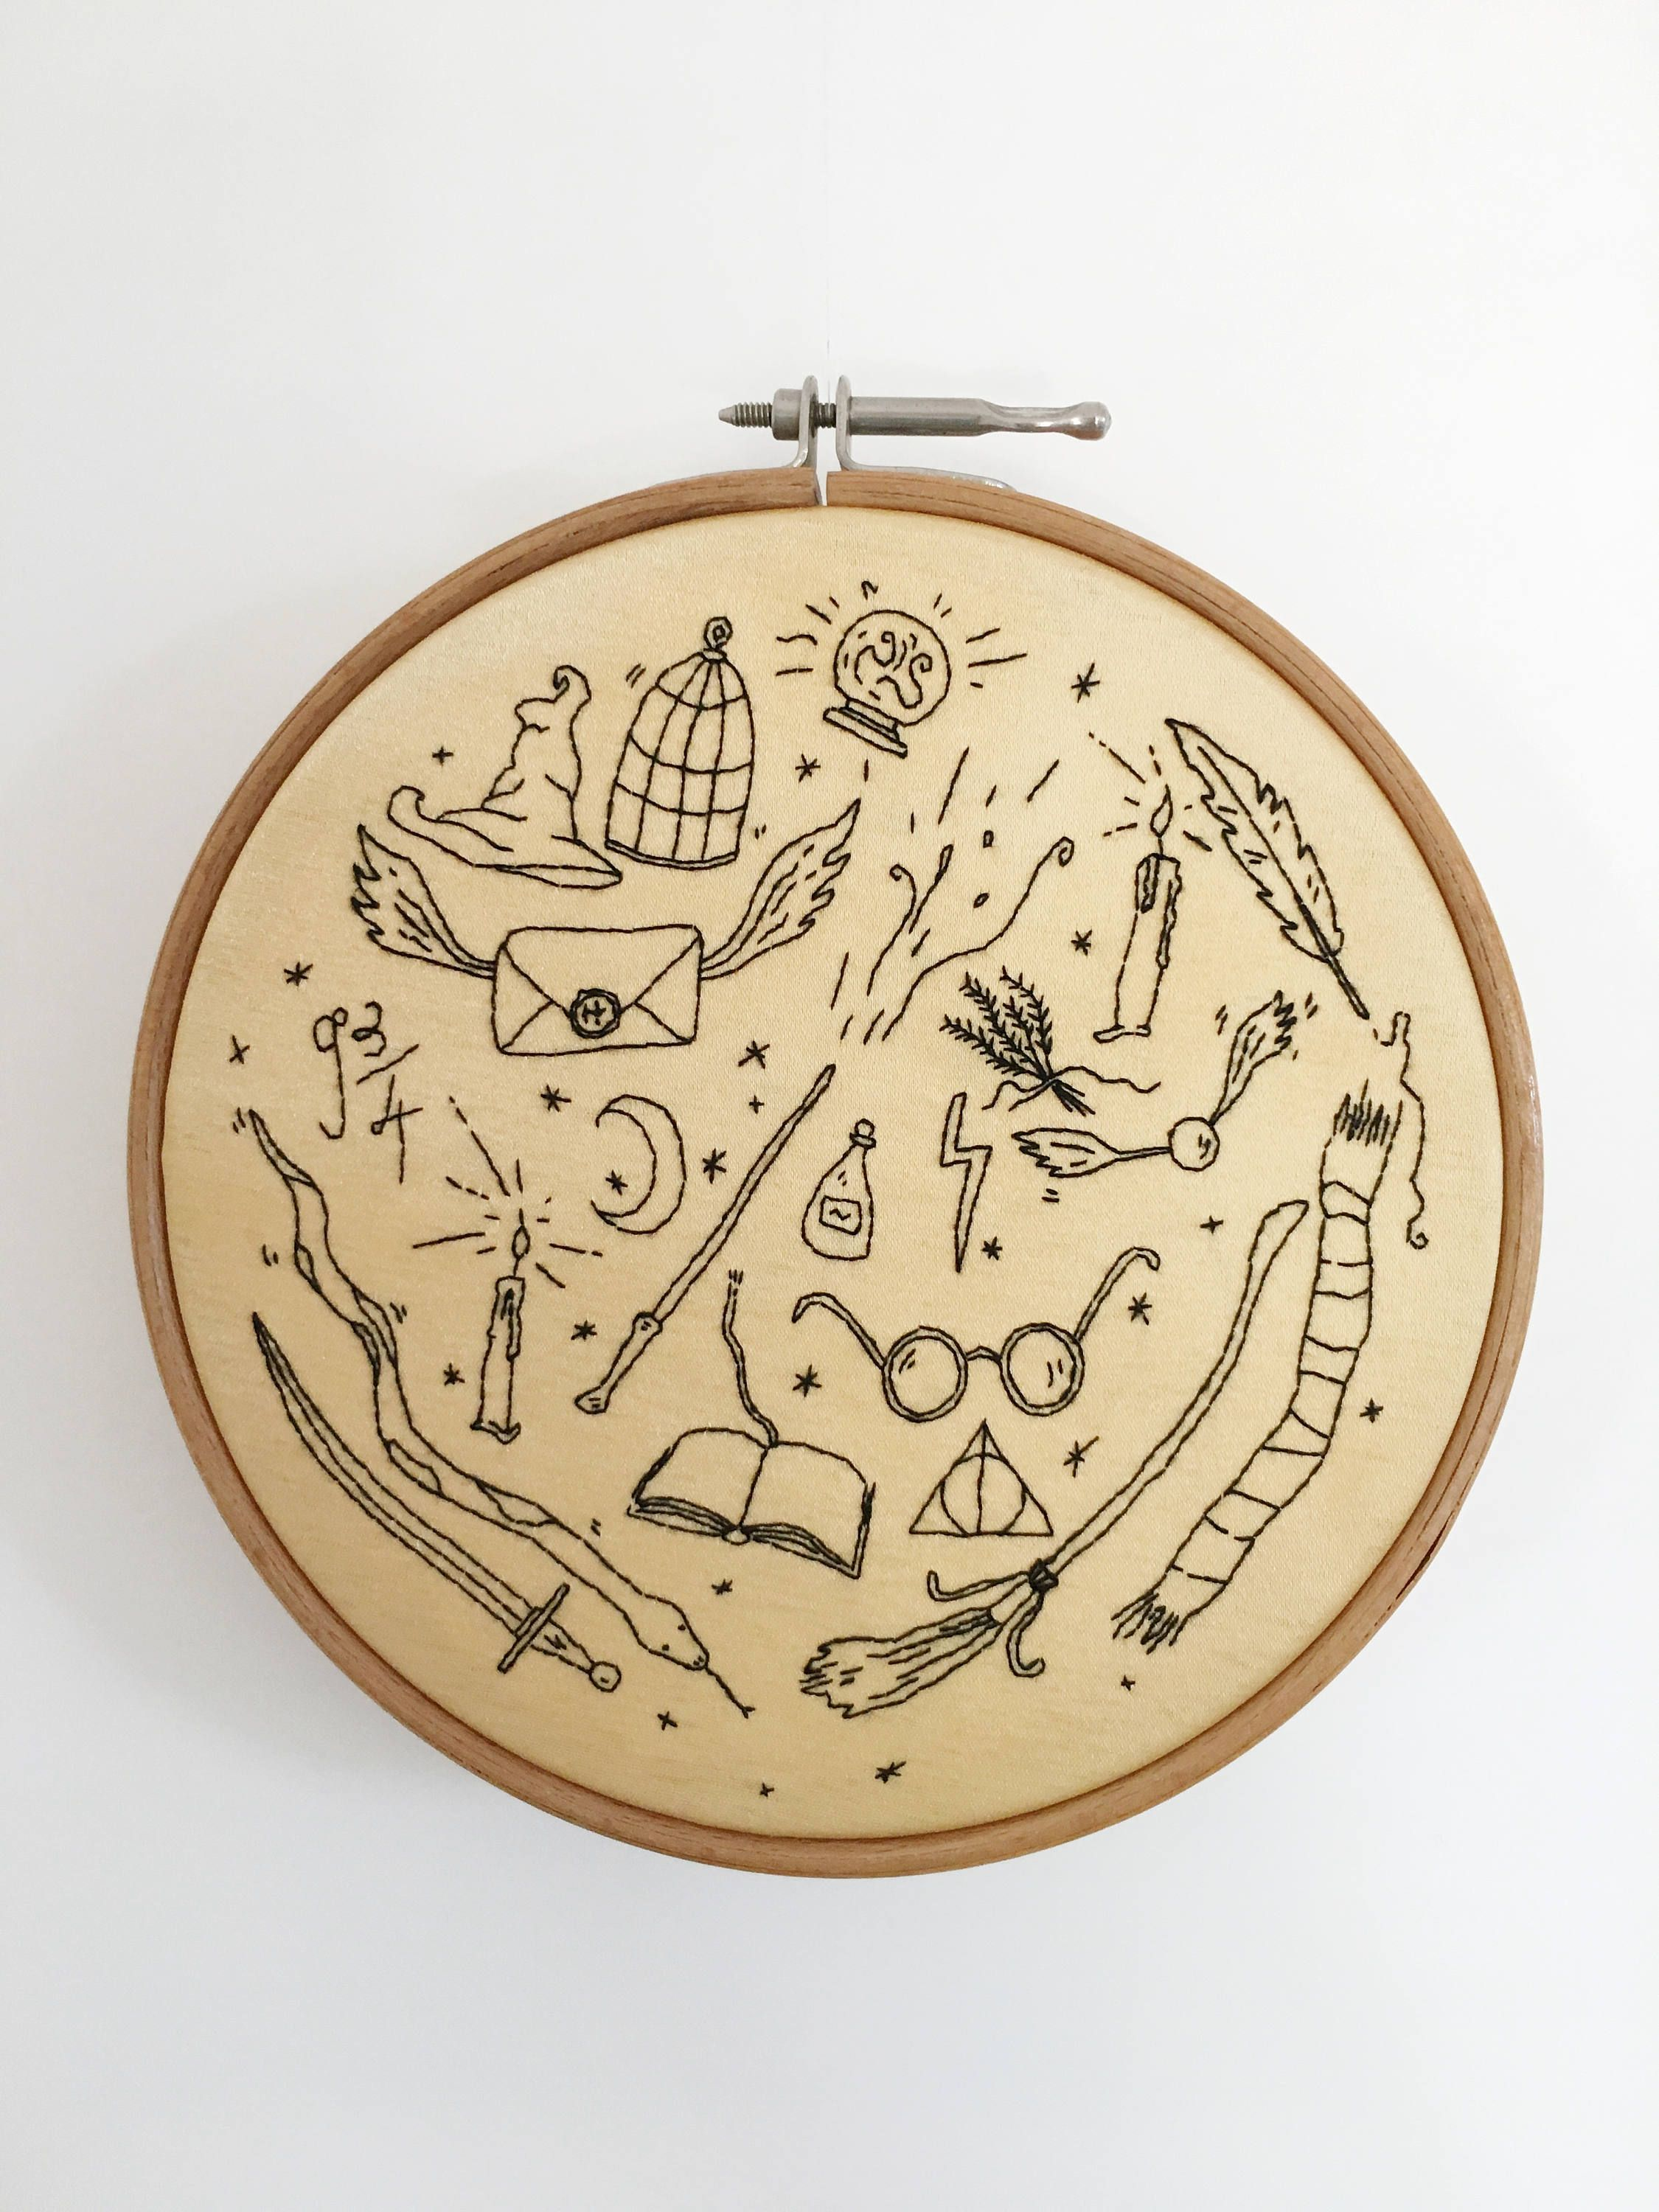 Hand-embroidered HARRY POTTER wall art | Heppy Pepper | Pinterest ...